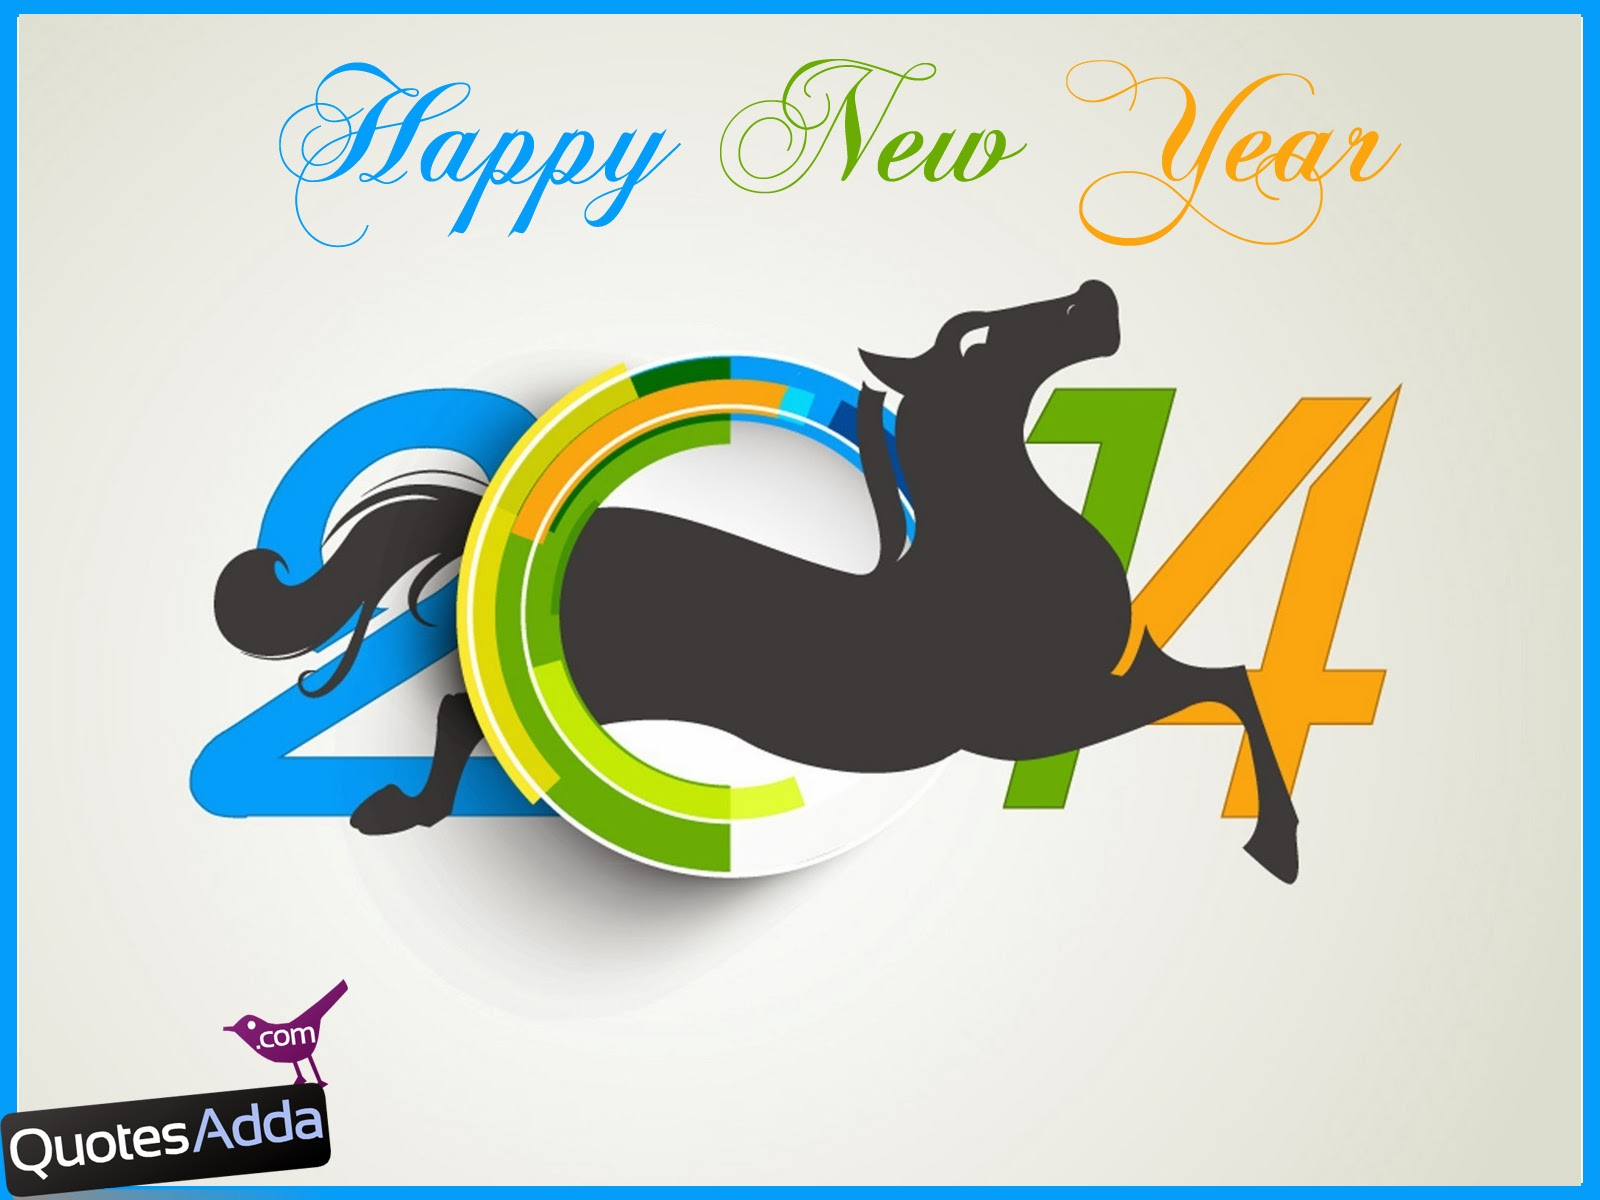 HD Wallpapers 2014 Happy New Year Messages  Happy New Year Chinese .11 Christian Chinese New Year E Cards 2014